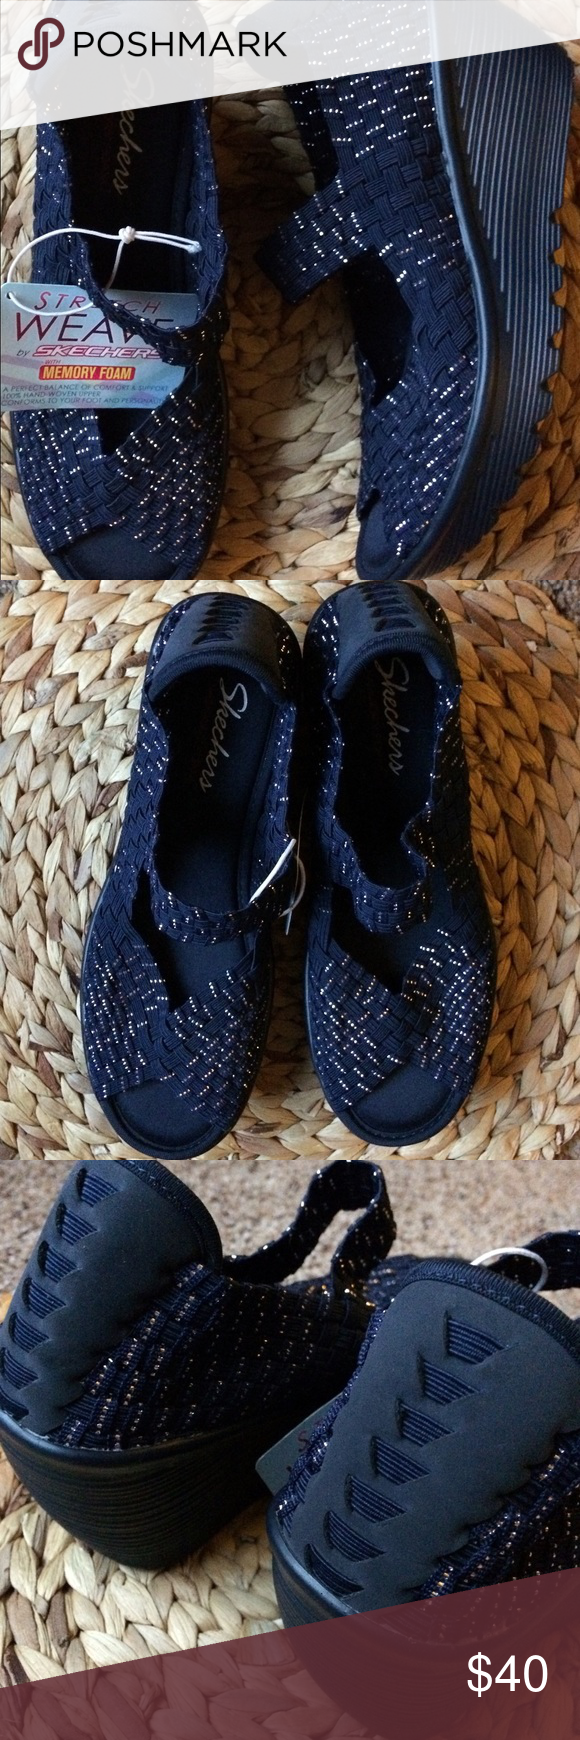 New Skechers Stretch Weave Wedge Navy Silver Brand New